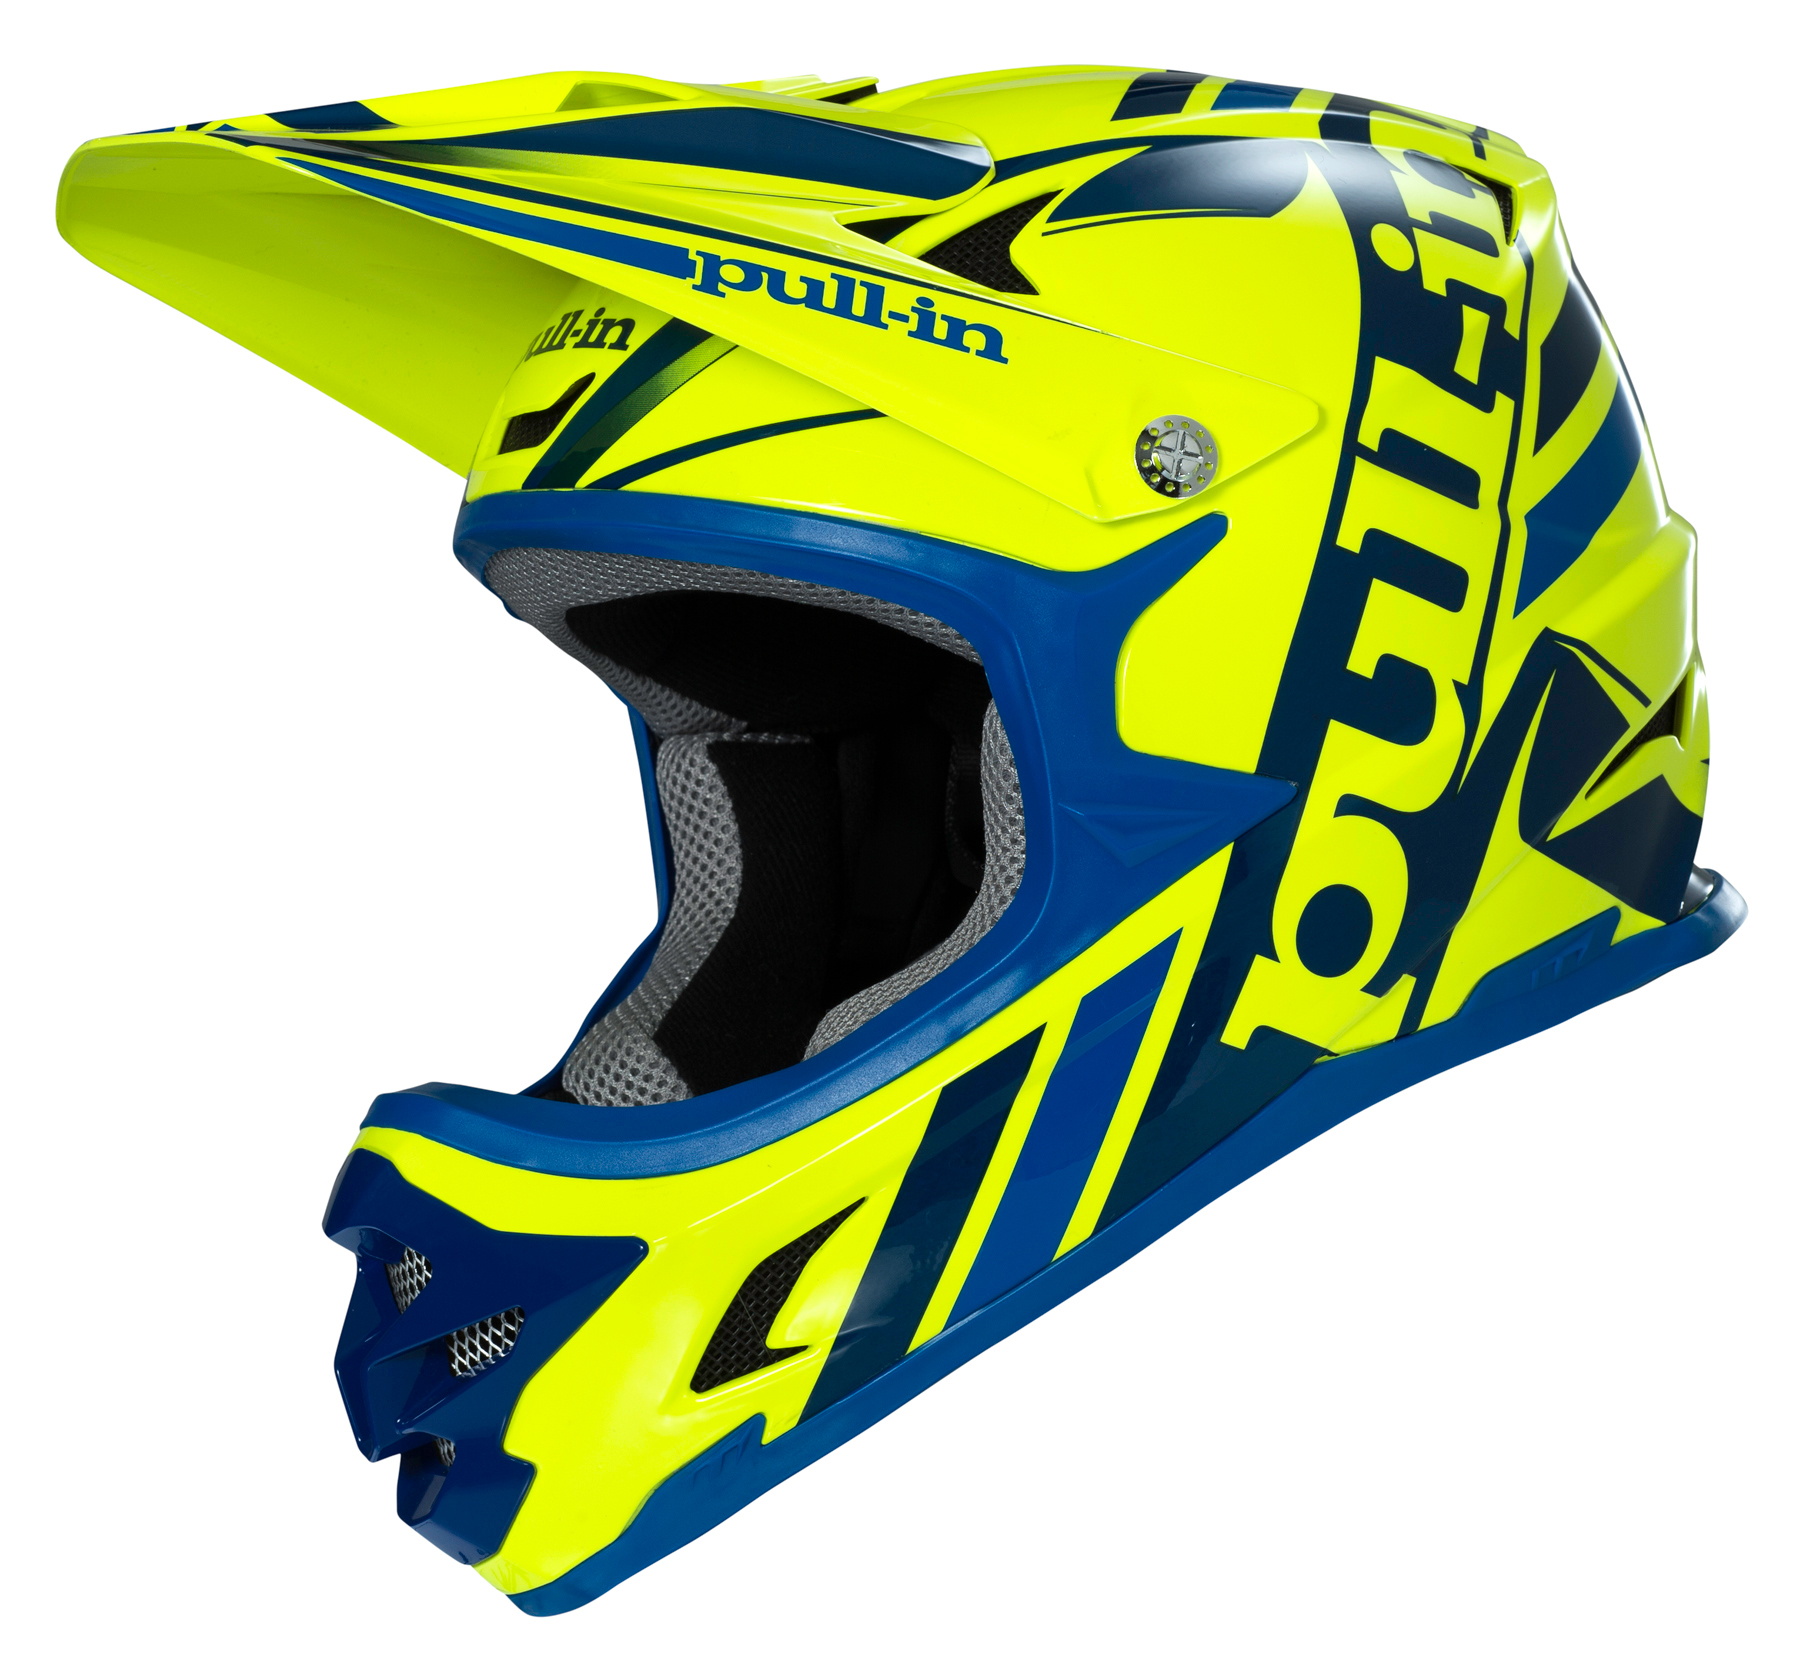 casque int gral vtt pull in jaune fluo bleu 2016. Black Bedroom Furniture Sets. Home Design Ideas